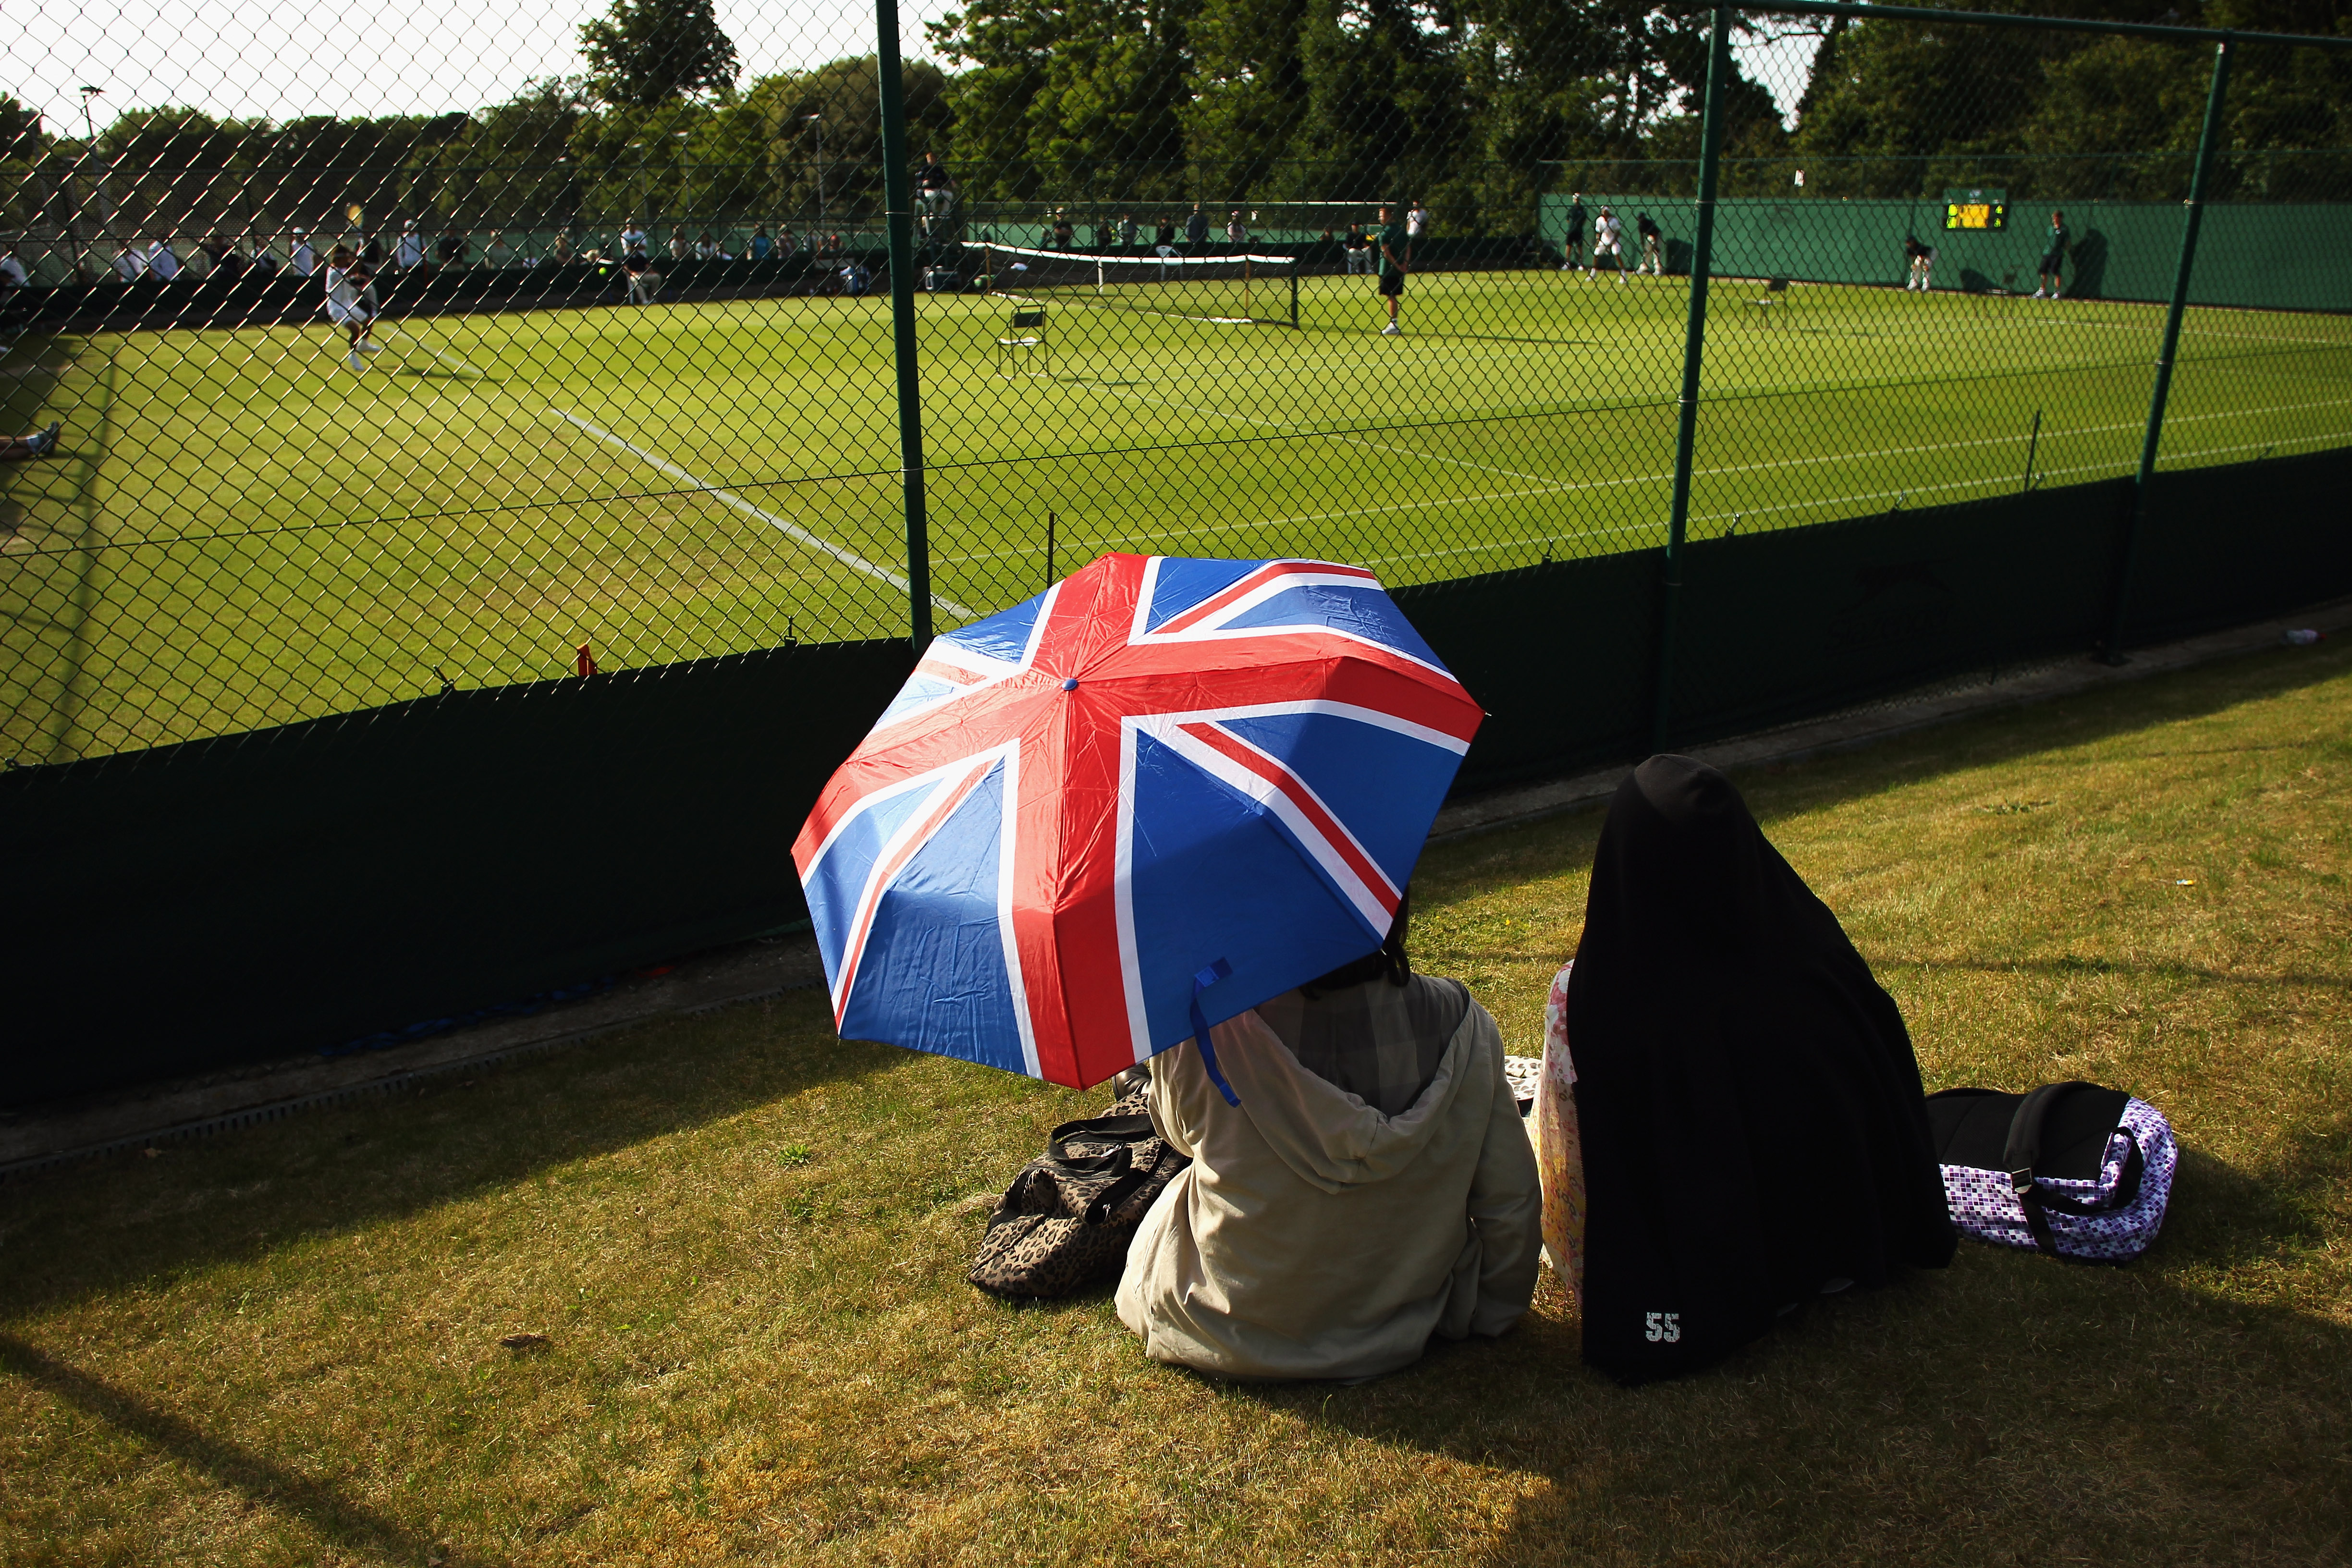 LONDON, ENGLAND - JUNE 14:  Spectators enjoy day two of the Wimbledon Championships 2011 Qualifying at the Bank of England Sports Ground on June 14, 2011 in London, England.  (Photo by Bryn Lennon/Getty Images)